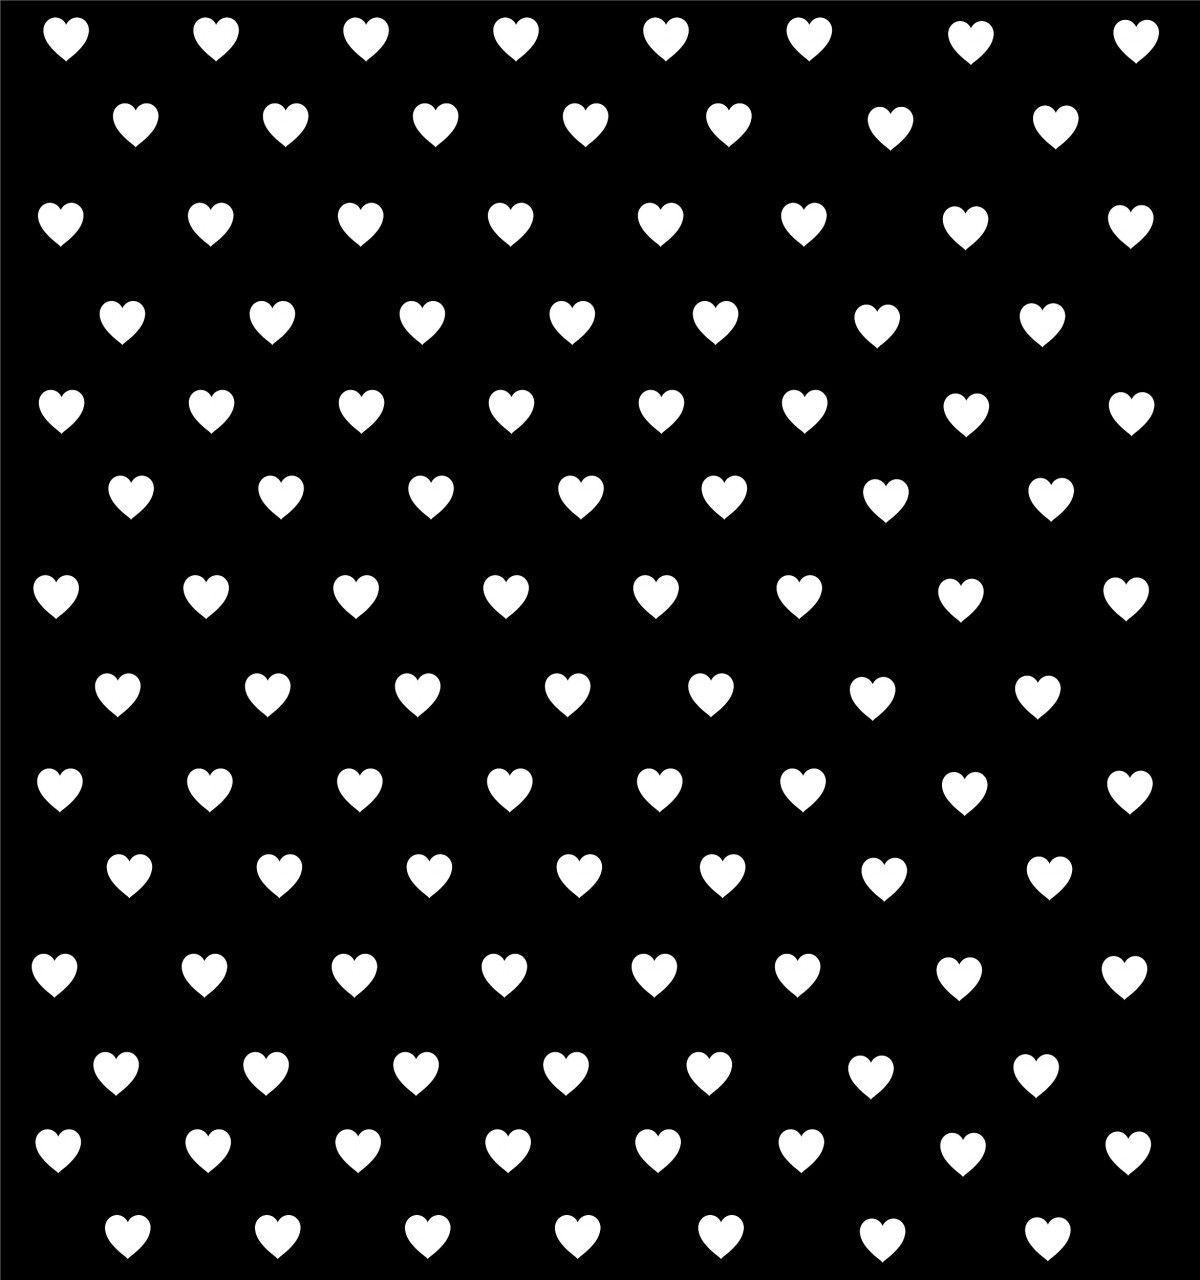 black and white hearts backgrounds - wallpaper cave